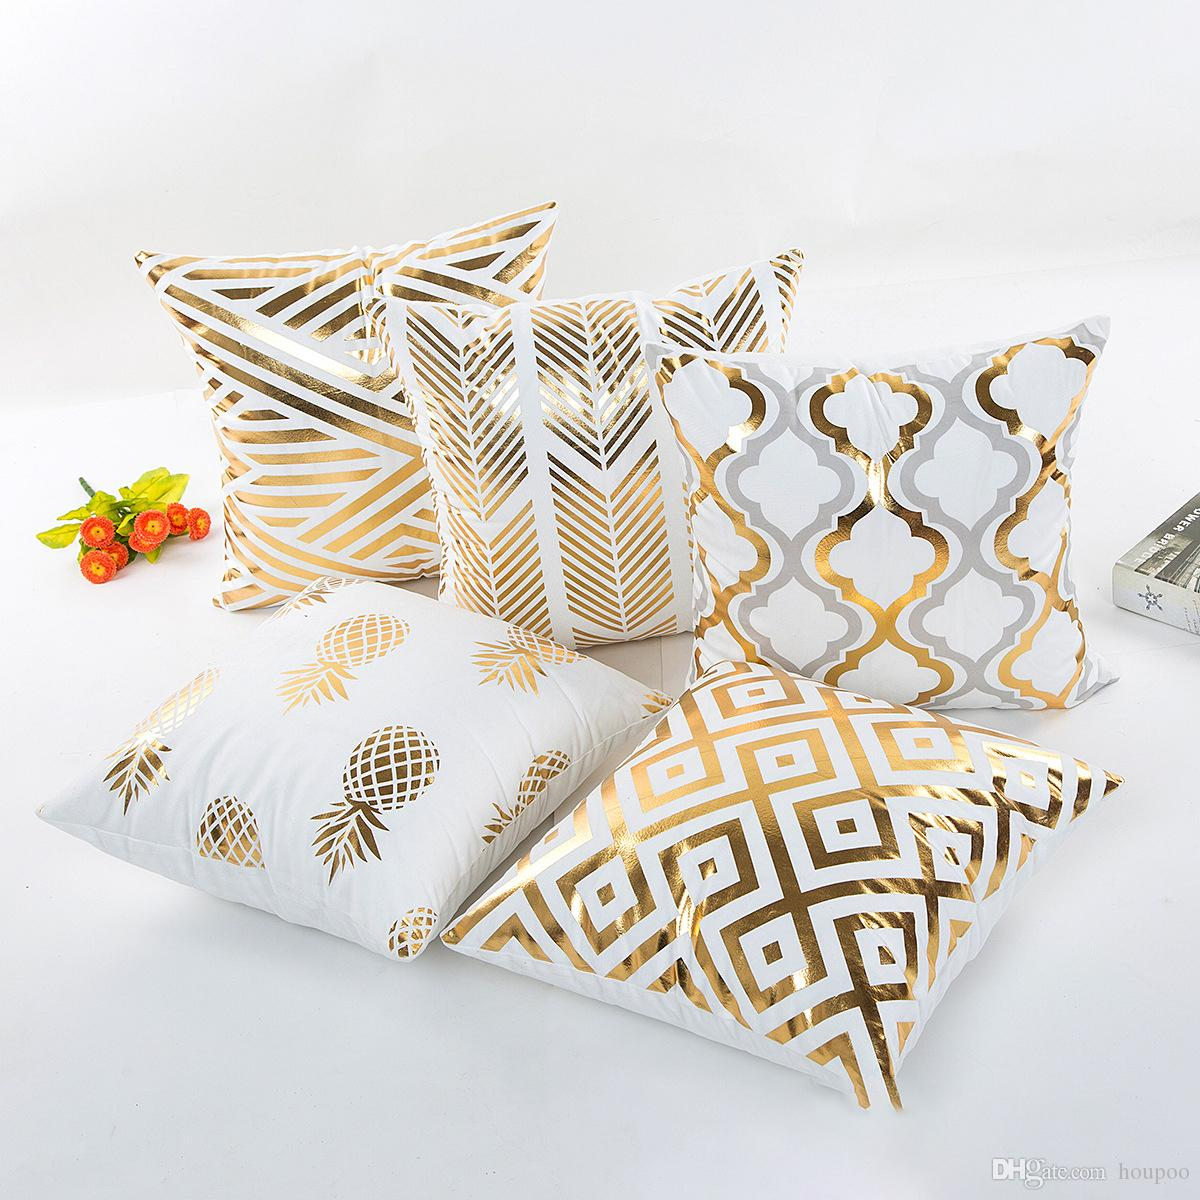 kitchen cushion covers curtain fabric for sale 45 45cm 5 styles gold patterns bedroom seat christmas gifts home decor accessories party decoration replacement outdoor sofa cushions